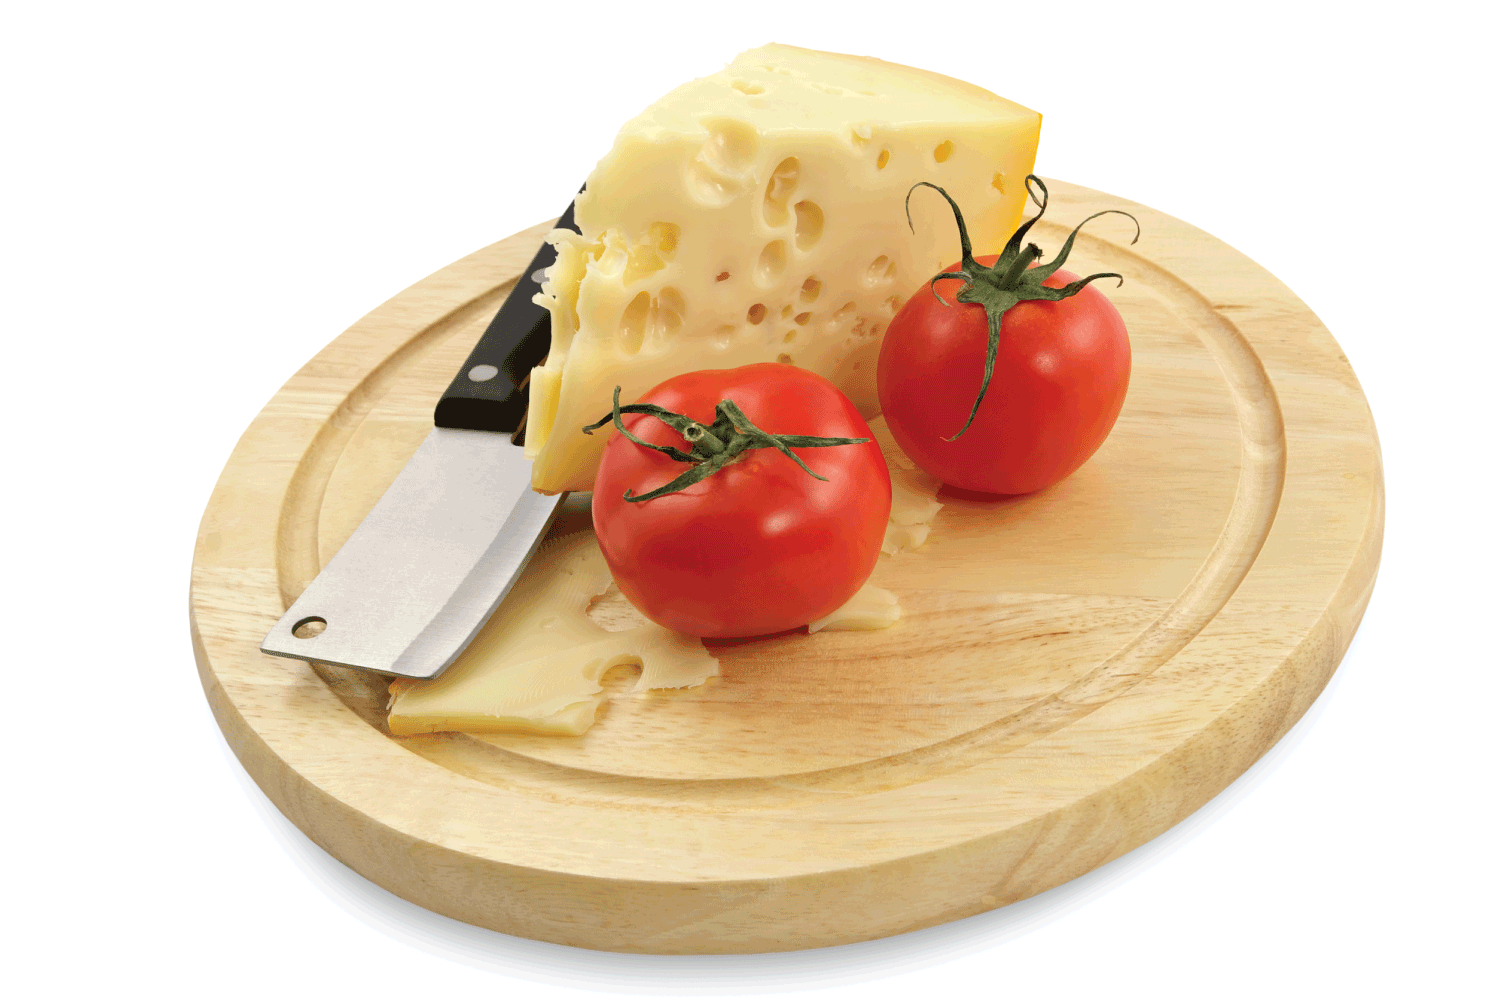 Cheese and fresh tomatoes on a wooden board